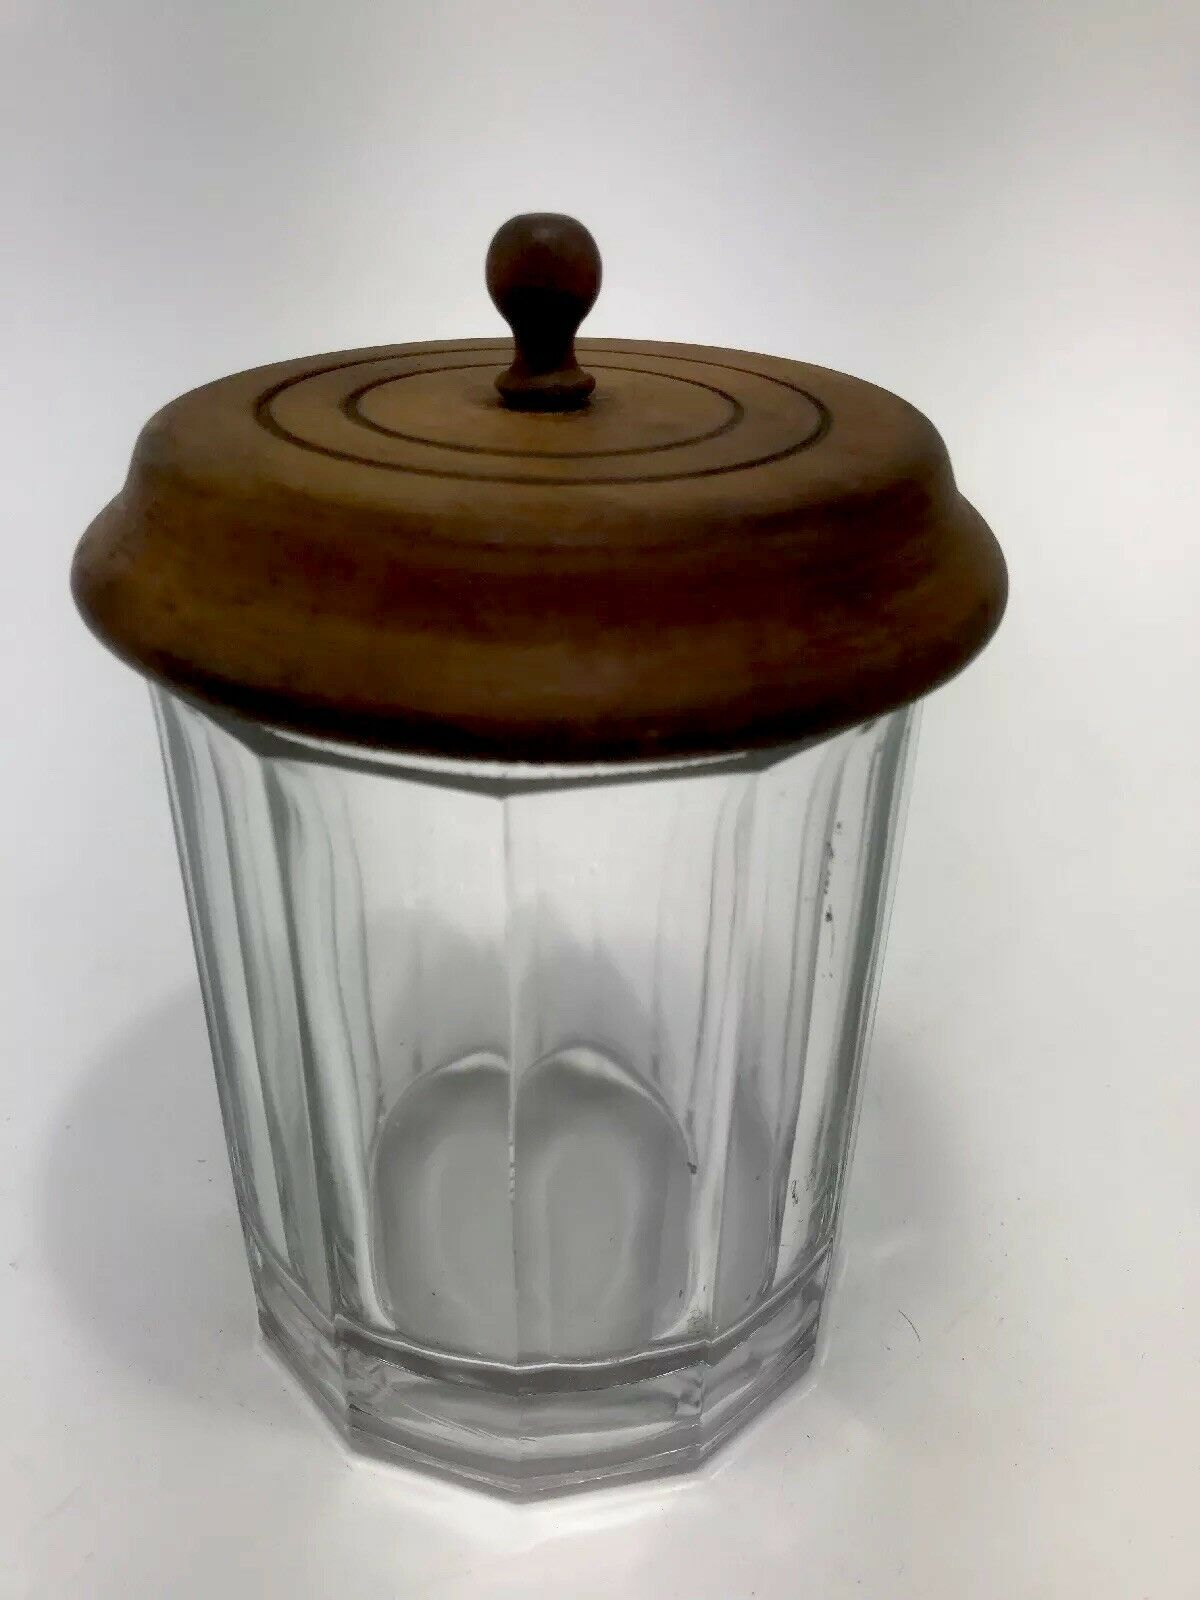 Vintage 1950/'s Ribbed Leaded glass Tobacco Humidor with Sailing Ship and Rudder LidNautical